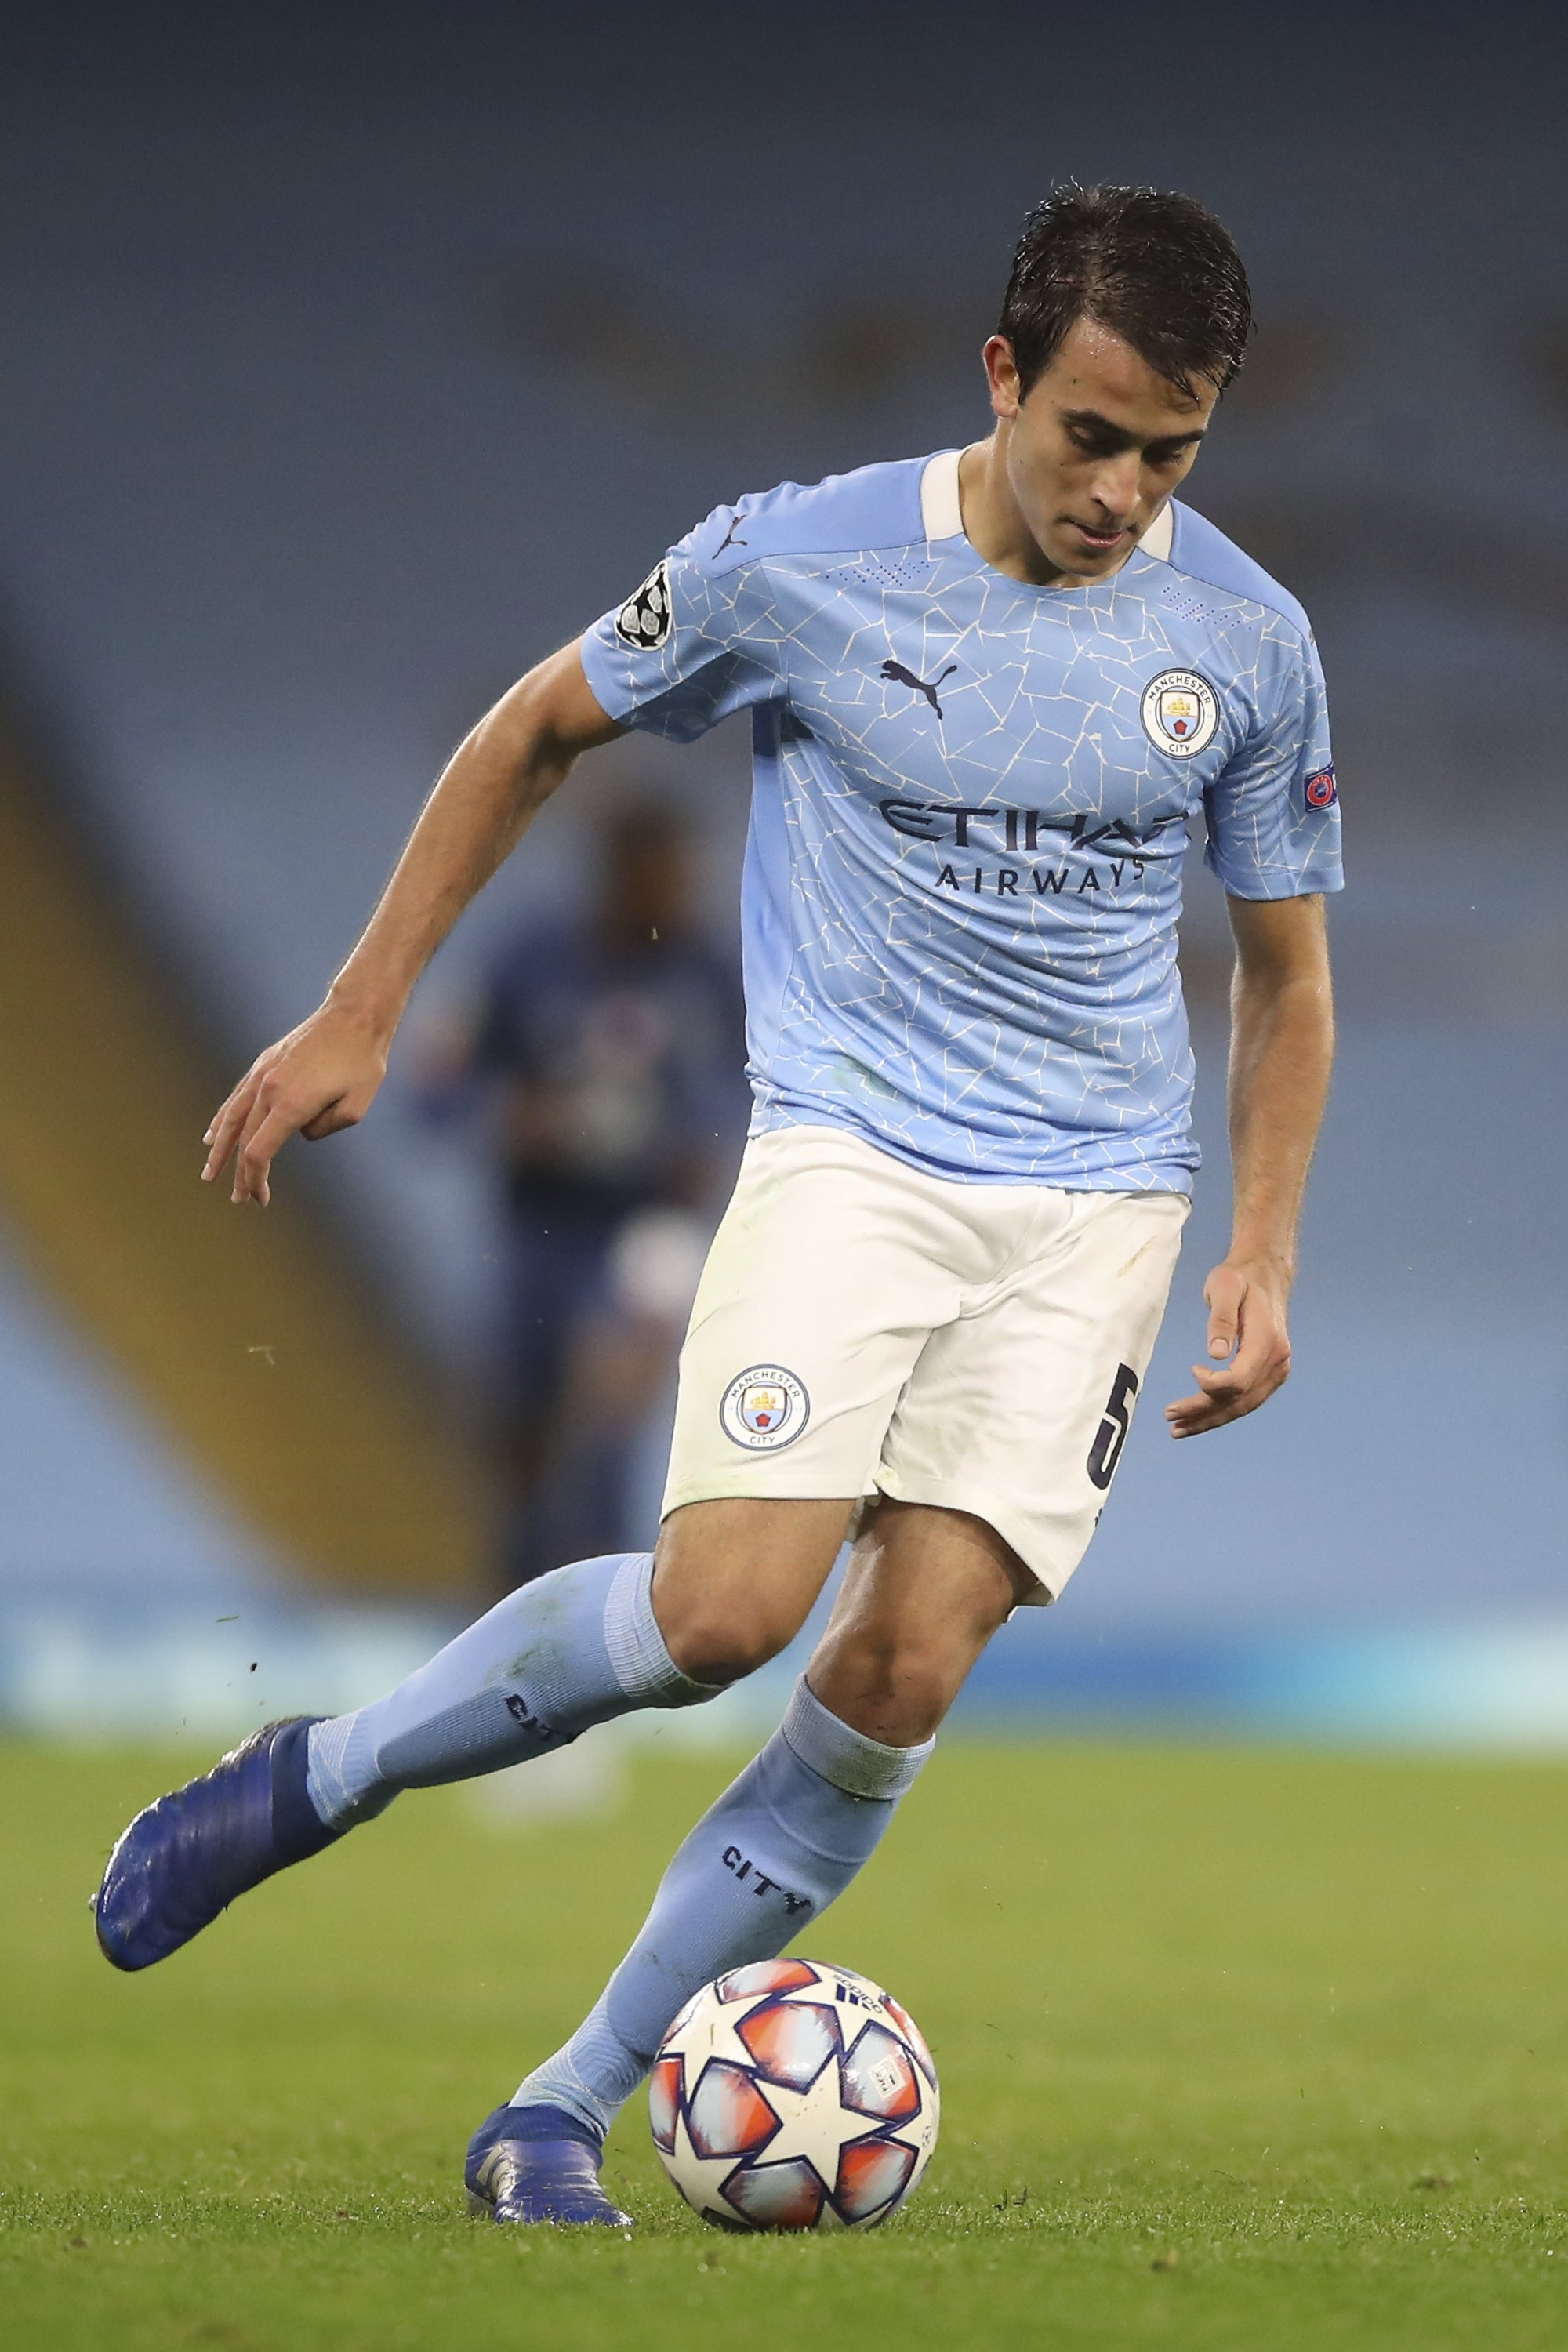 Manchester City's Eric Garcia runs with the ball during a Champions League match against FC Porto at the Etihad Stadium, Manchester, England, Oct. 21, 2020. (AP Photo)